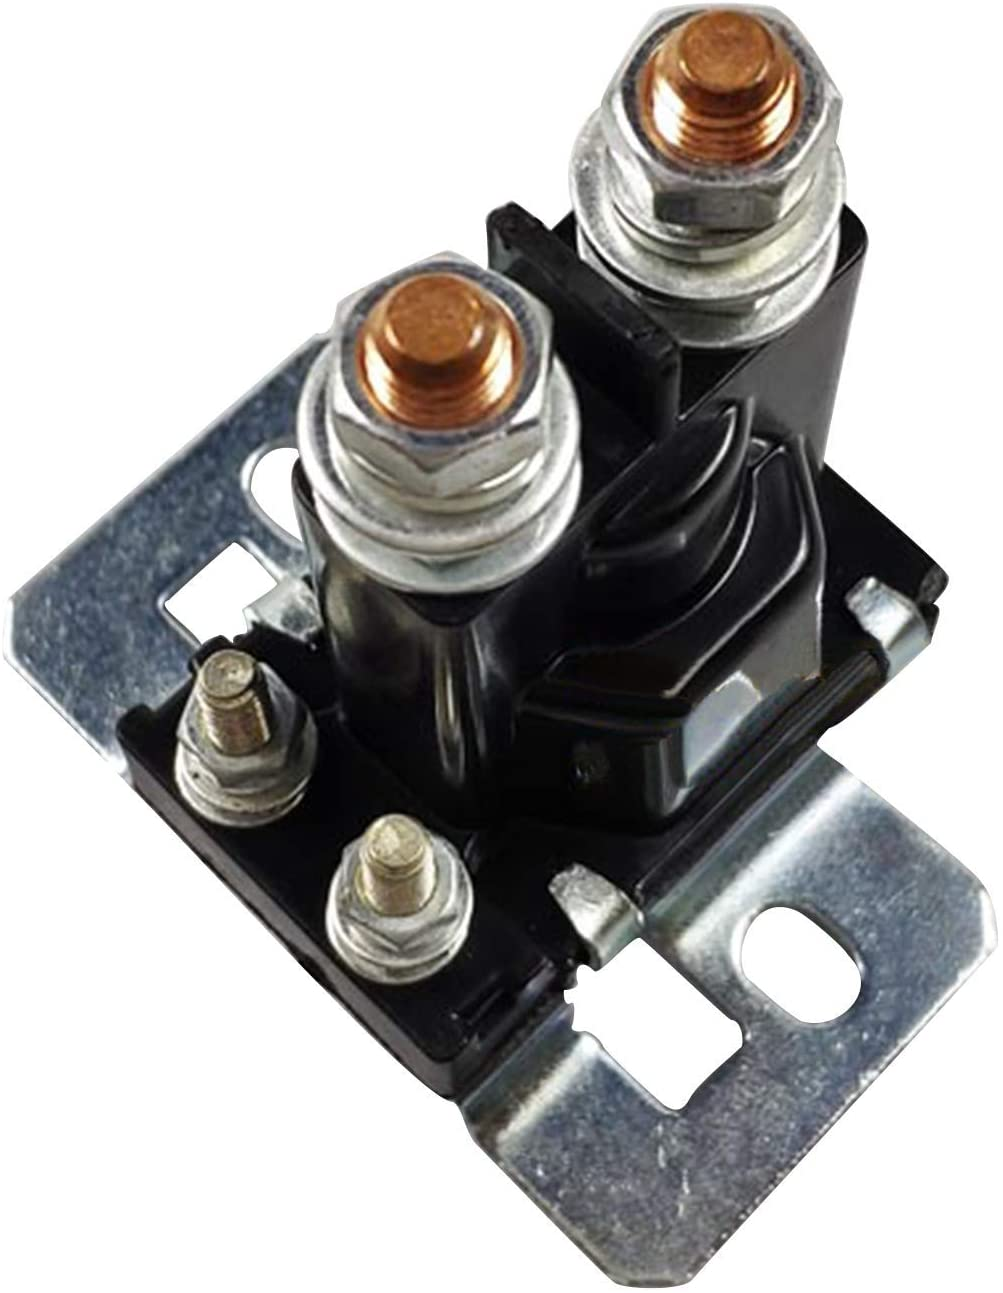 Disen parts 4 Terminals 14 Volt Solenoid with Silver Contacts 27153-G01 612813 784-1411-020-16 for EZGO TXT Gas Golf Carts 4 Cycle 1994-up